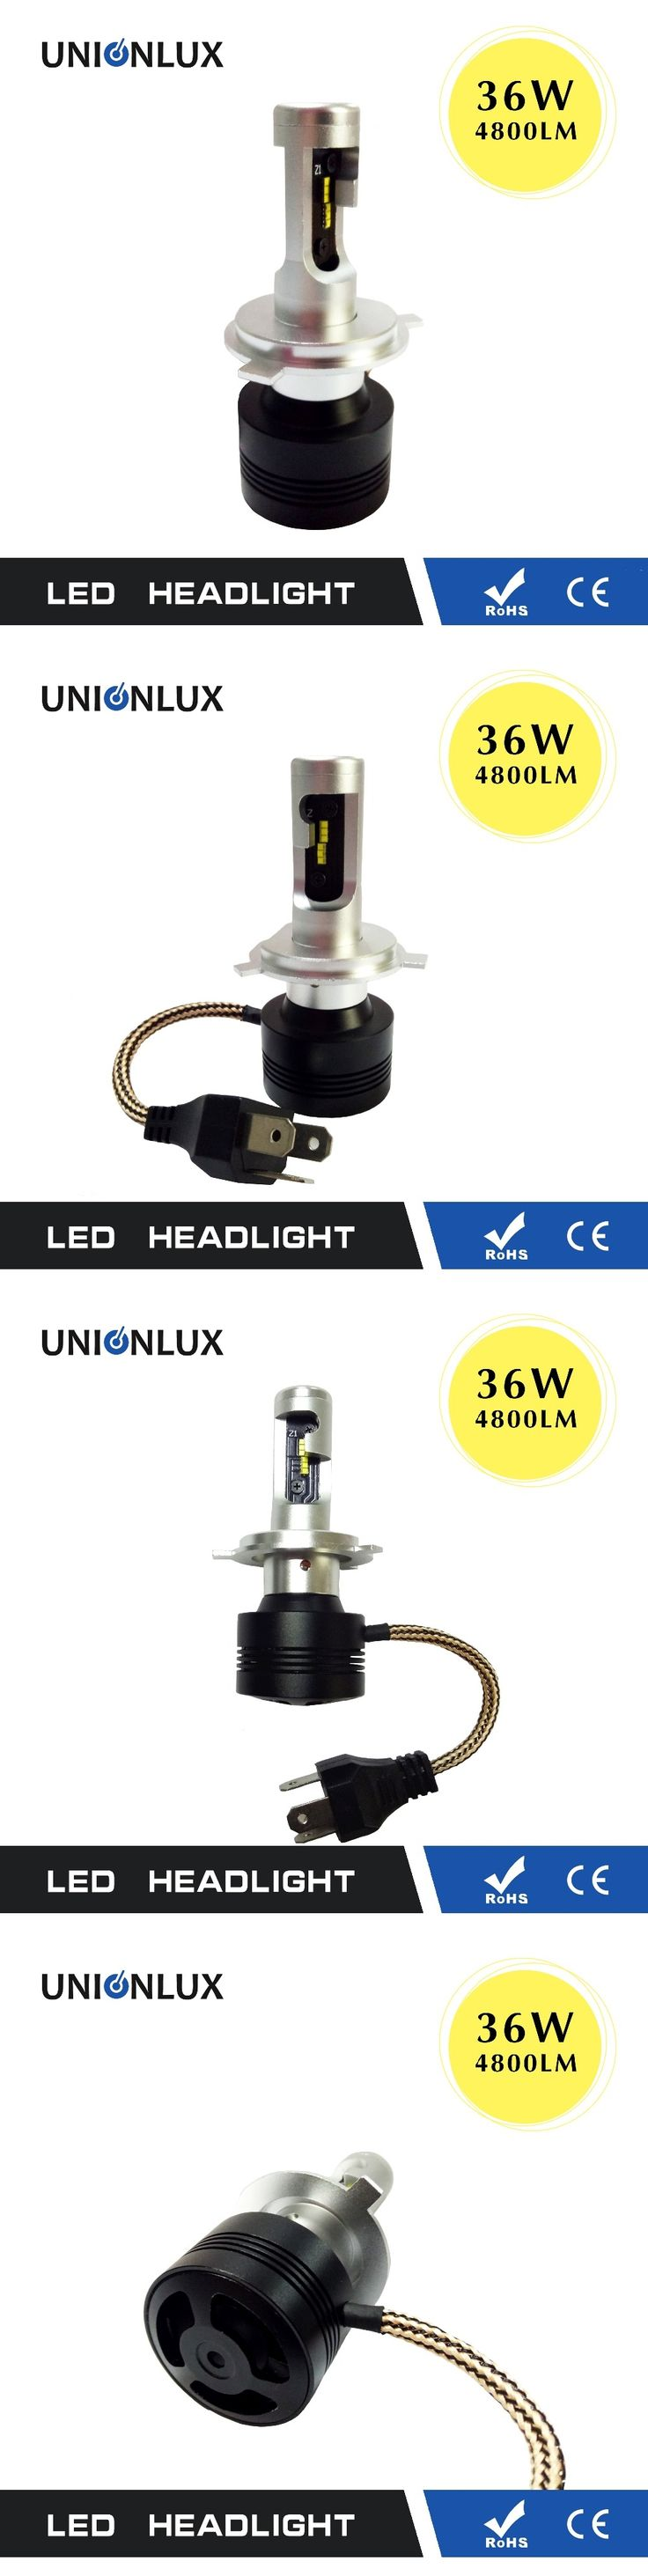 Unionlux 2017 Newest A7 All in One LED Headlight 36W Super Bright 4800 Lumens H4 Dual Beam High/Low Automobile Light Bulb